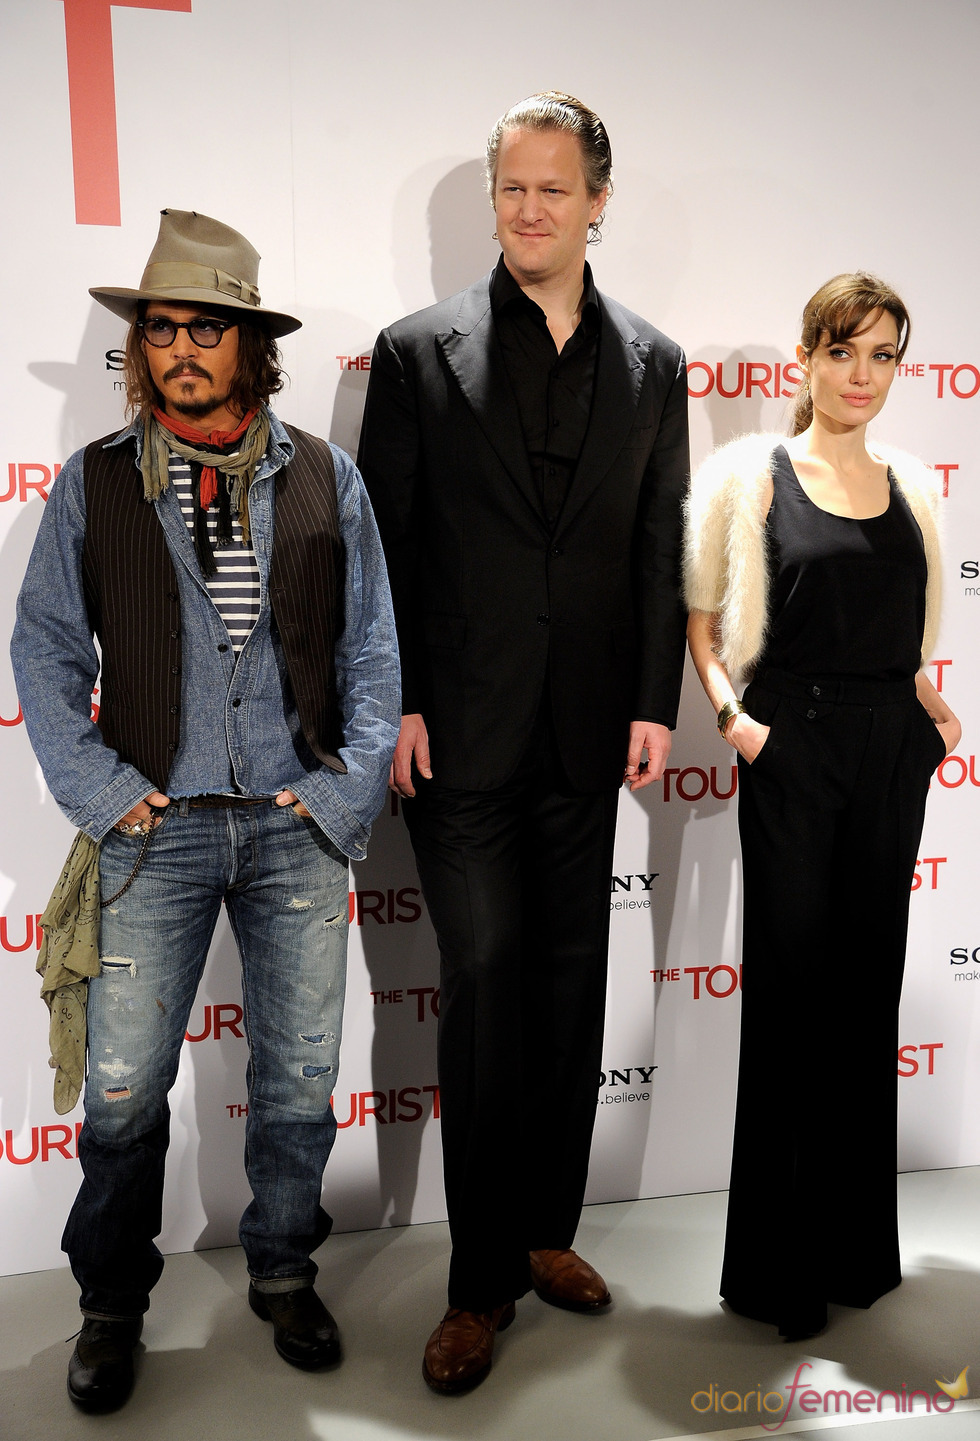 Johnny Depp, Angelina Jolie y Florian Henckel Von Donnersmarck llegan a Madrid